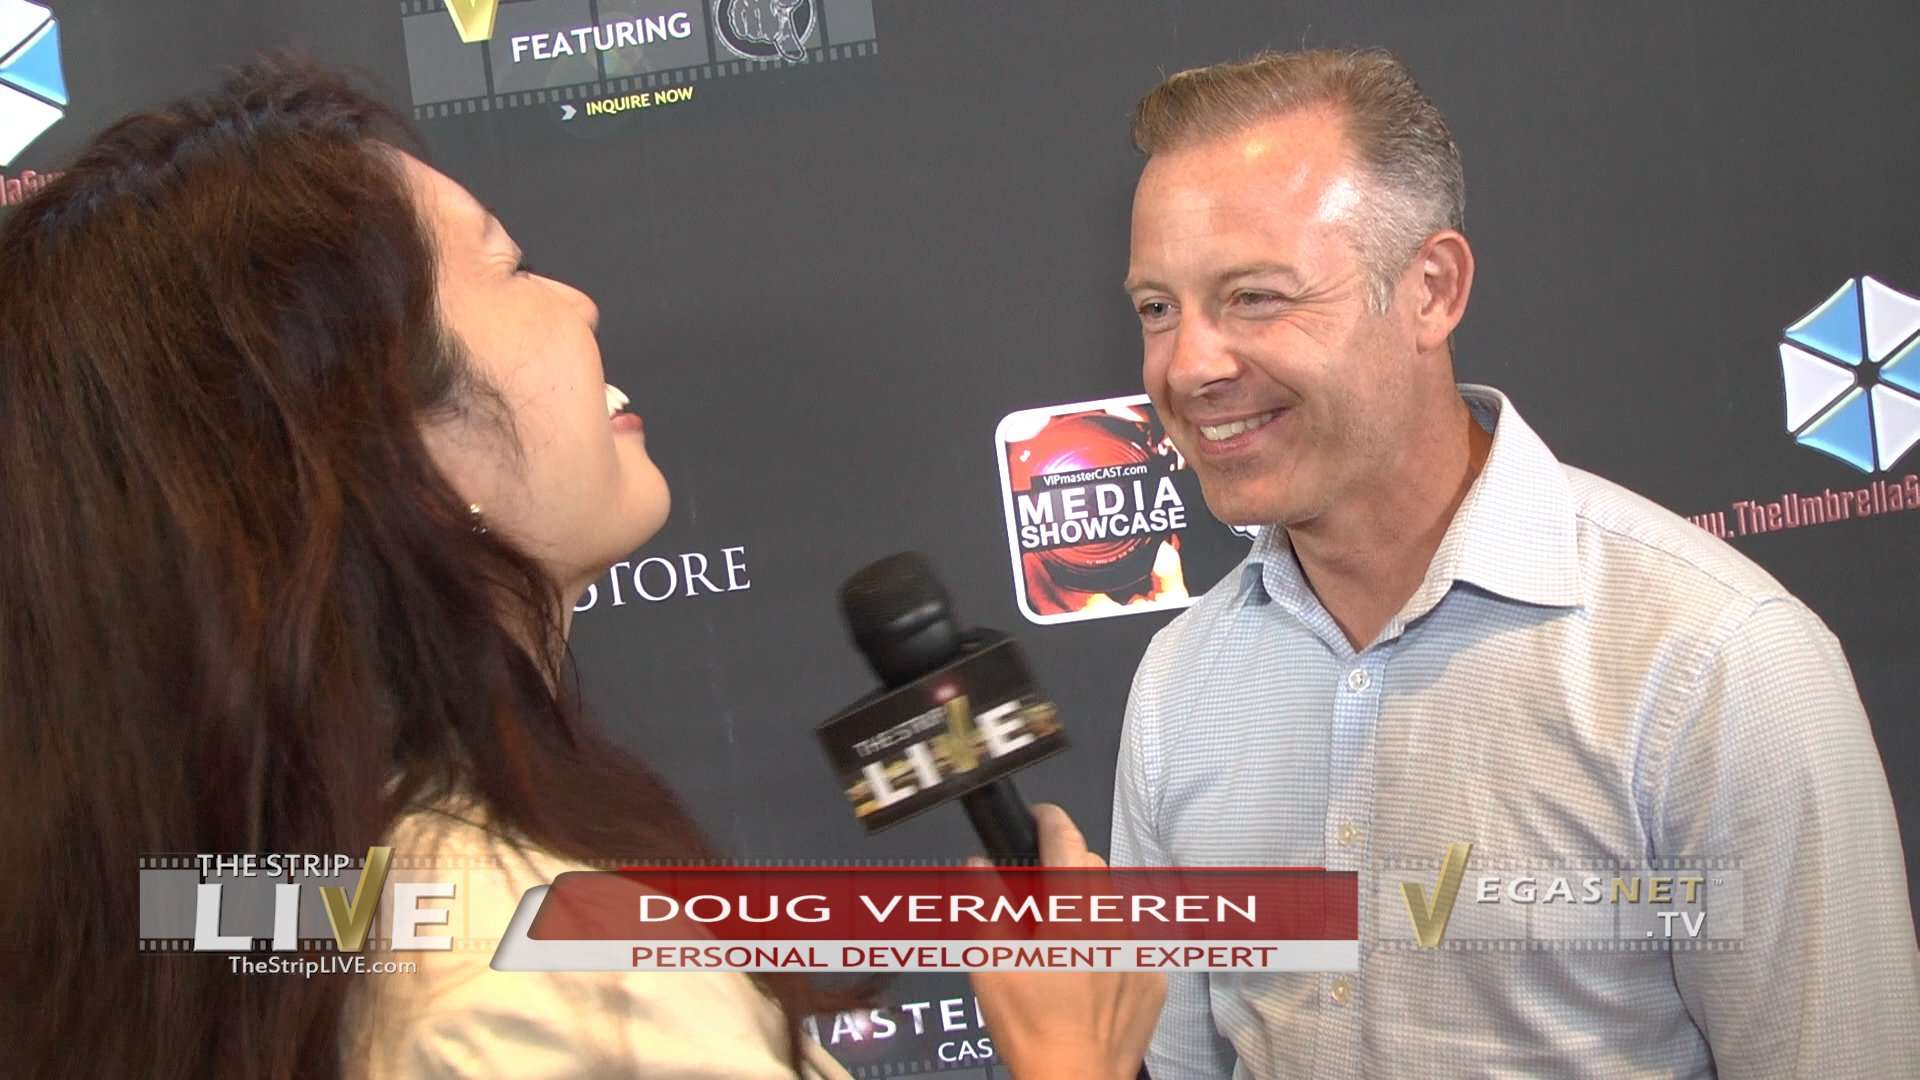 Douglas Vermeeren | Event Showcase